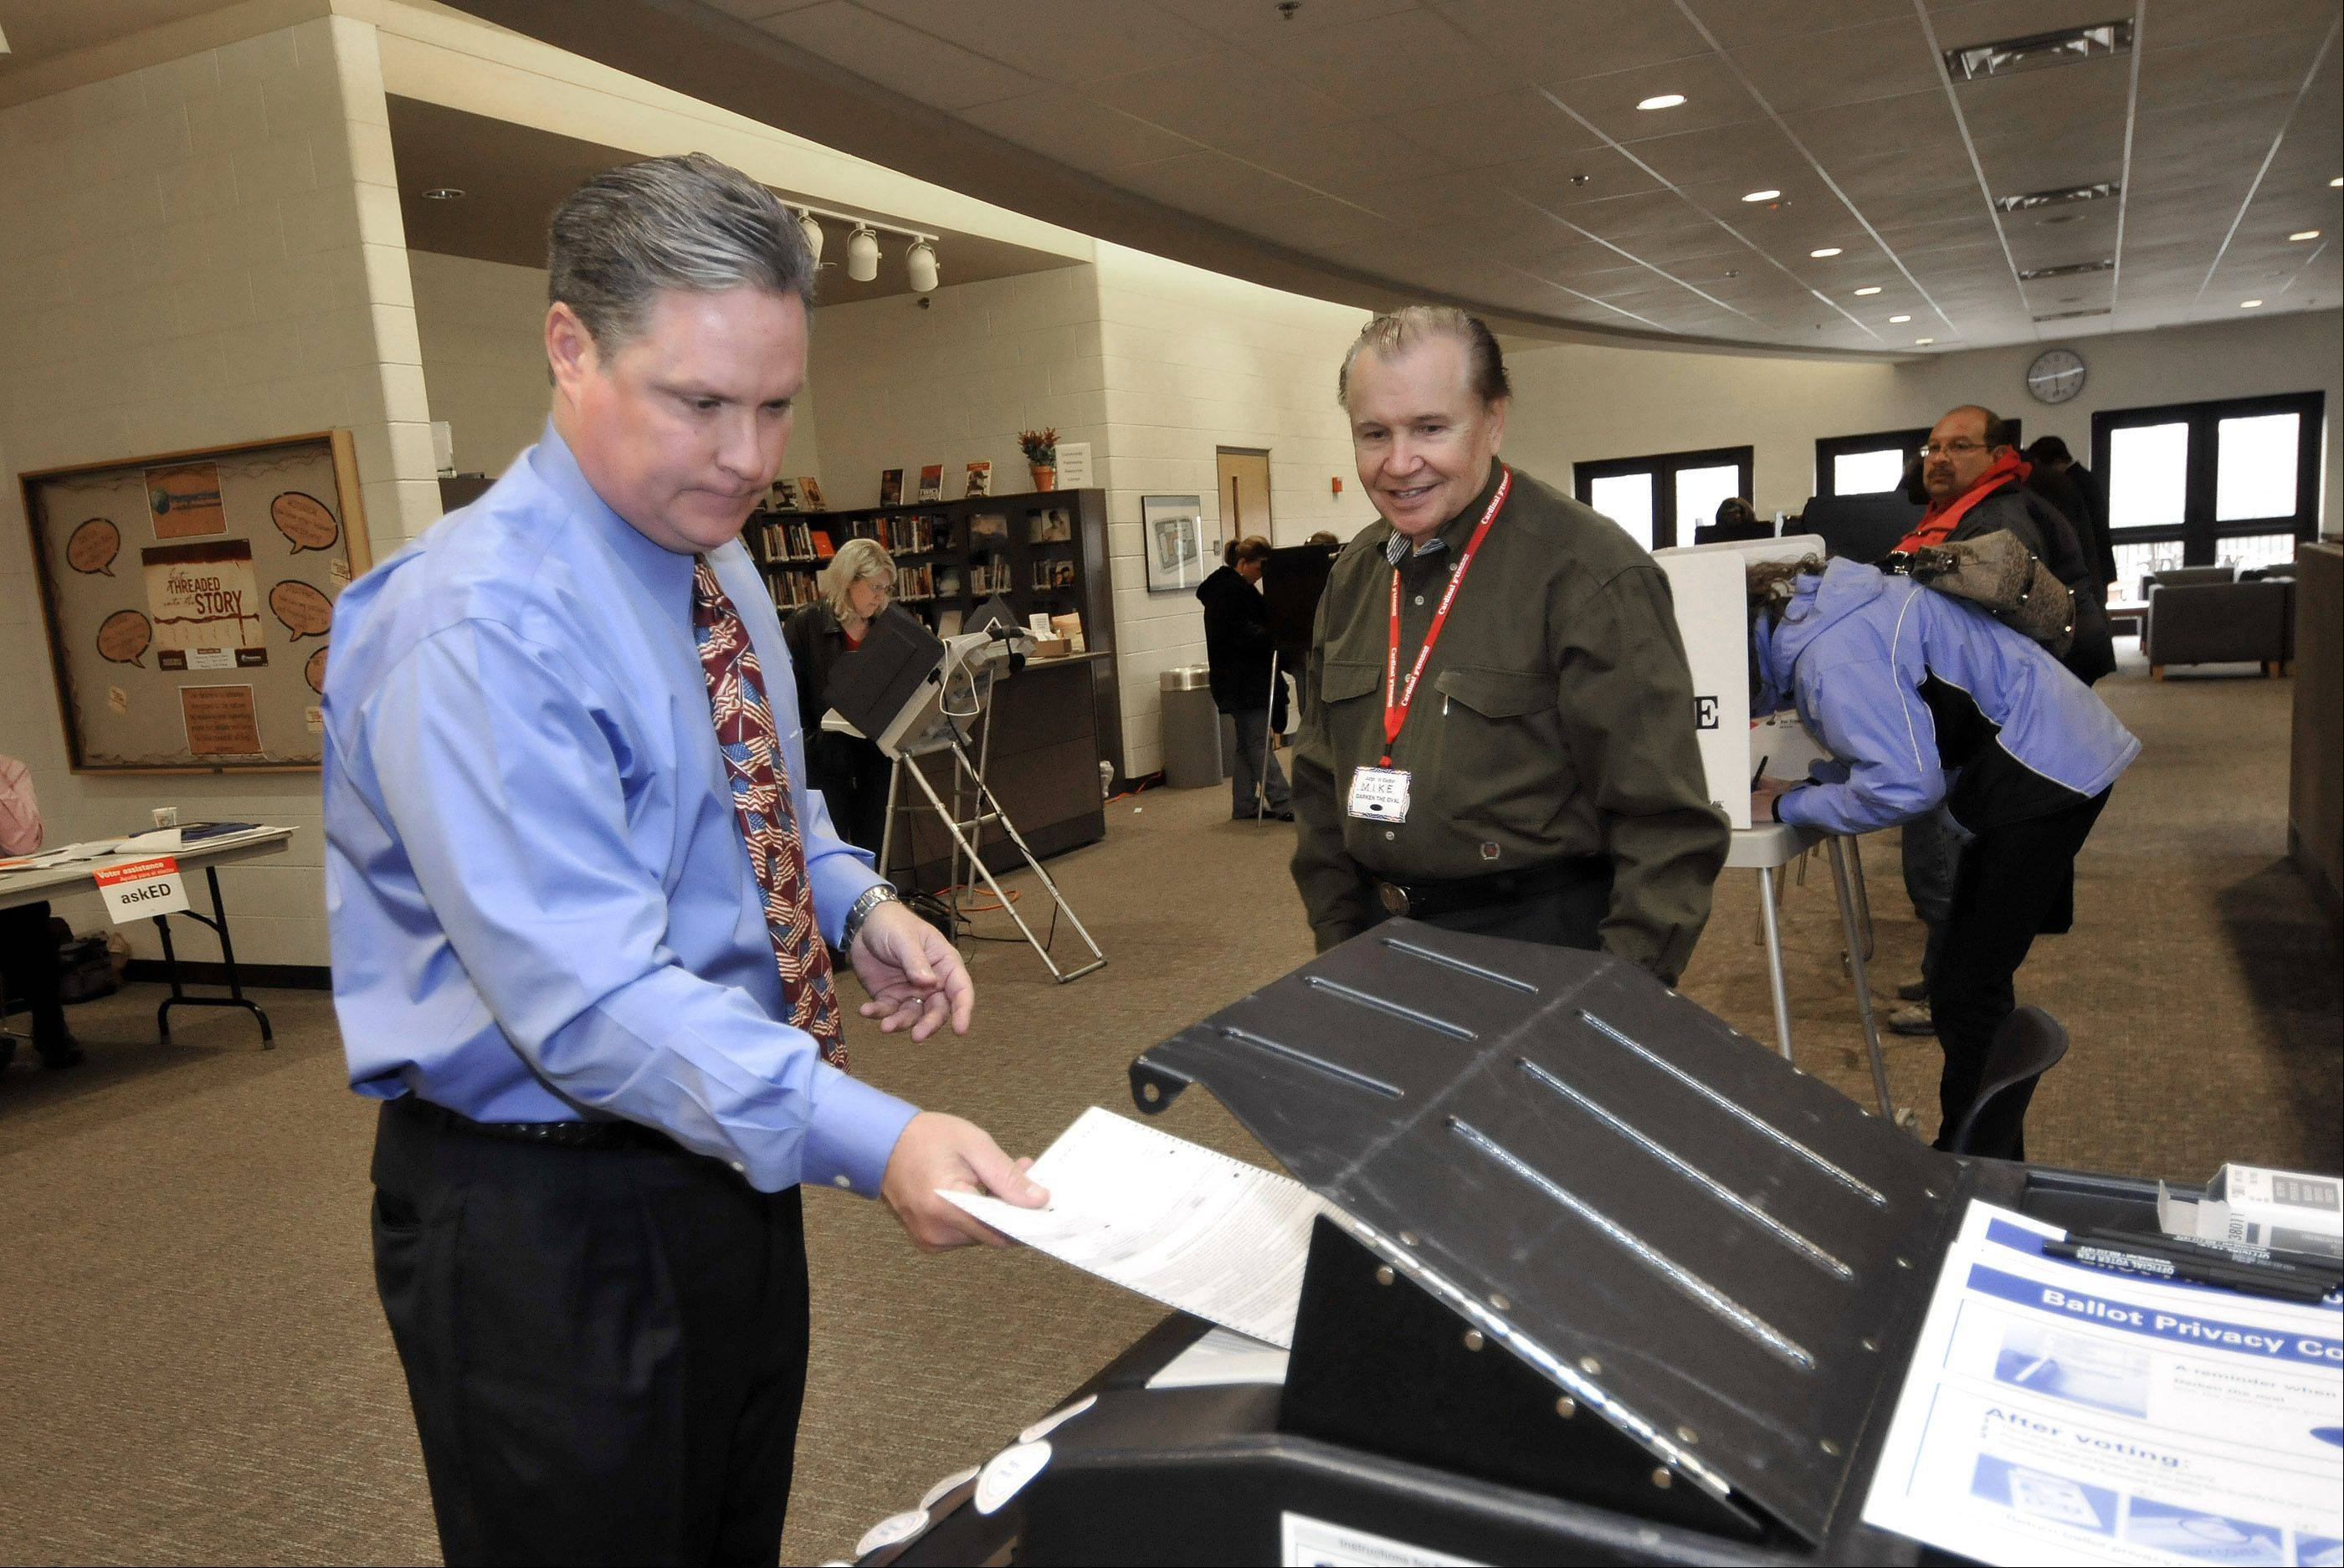 DuPage County Board member Jim Zay, left, casts his ballot on Tuesday morning at his polling place in West Chicago while election official Mike Bodnar watches. Zay won re-election to his District 6 seat.